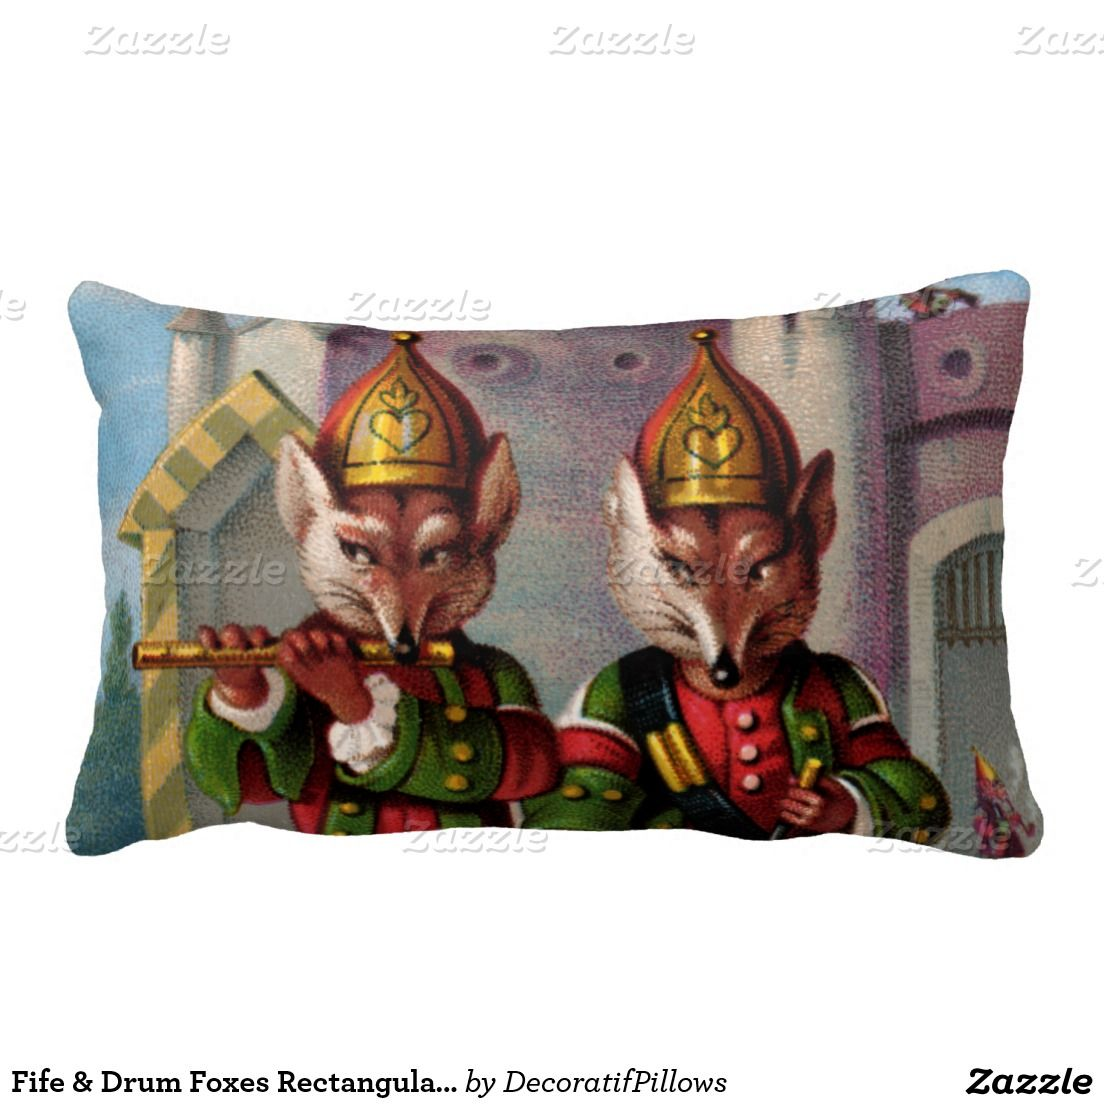 / fife and drum foxes / pillow /